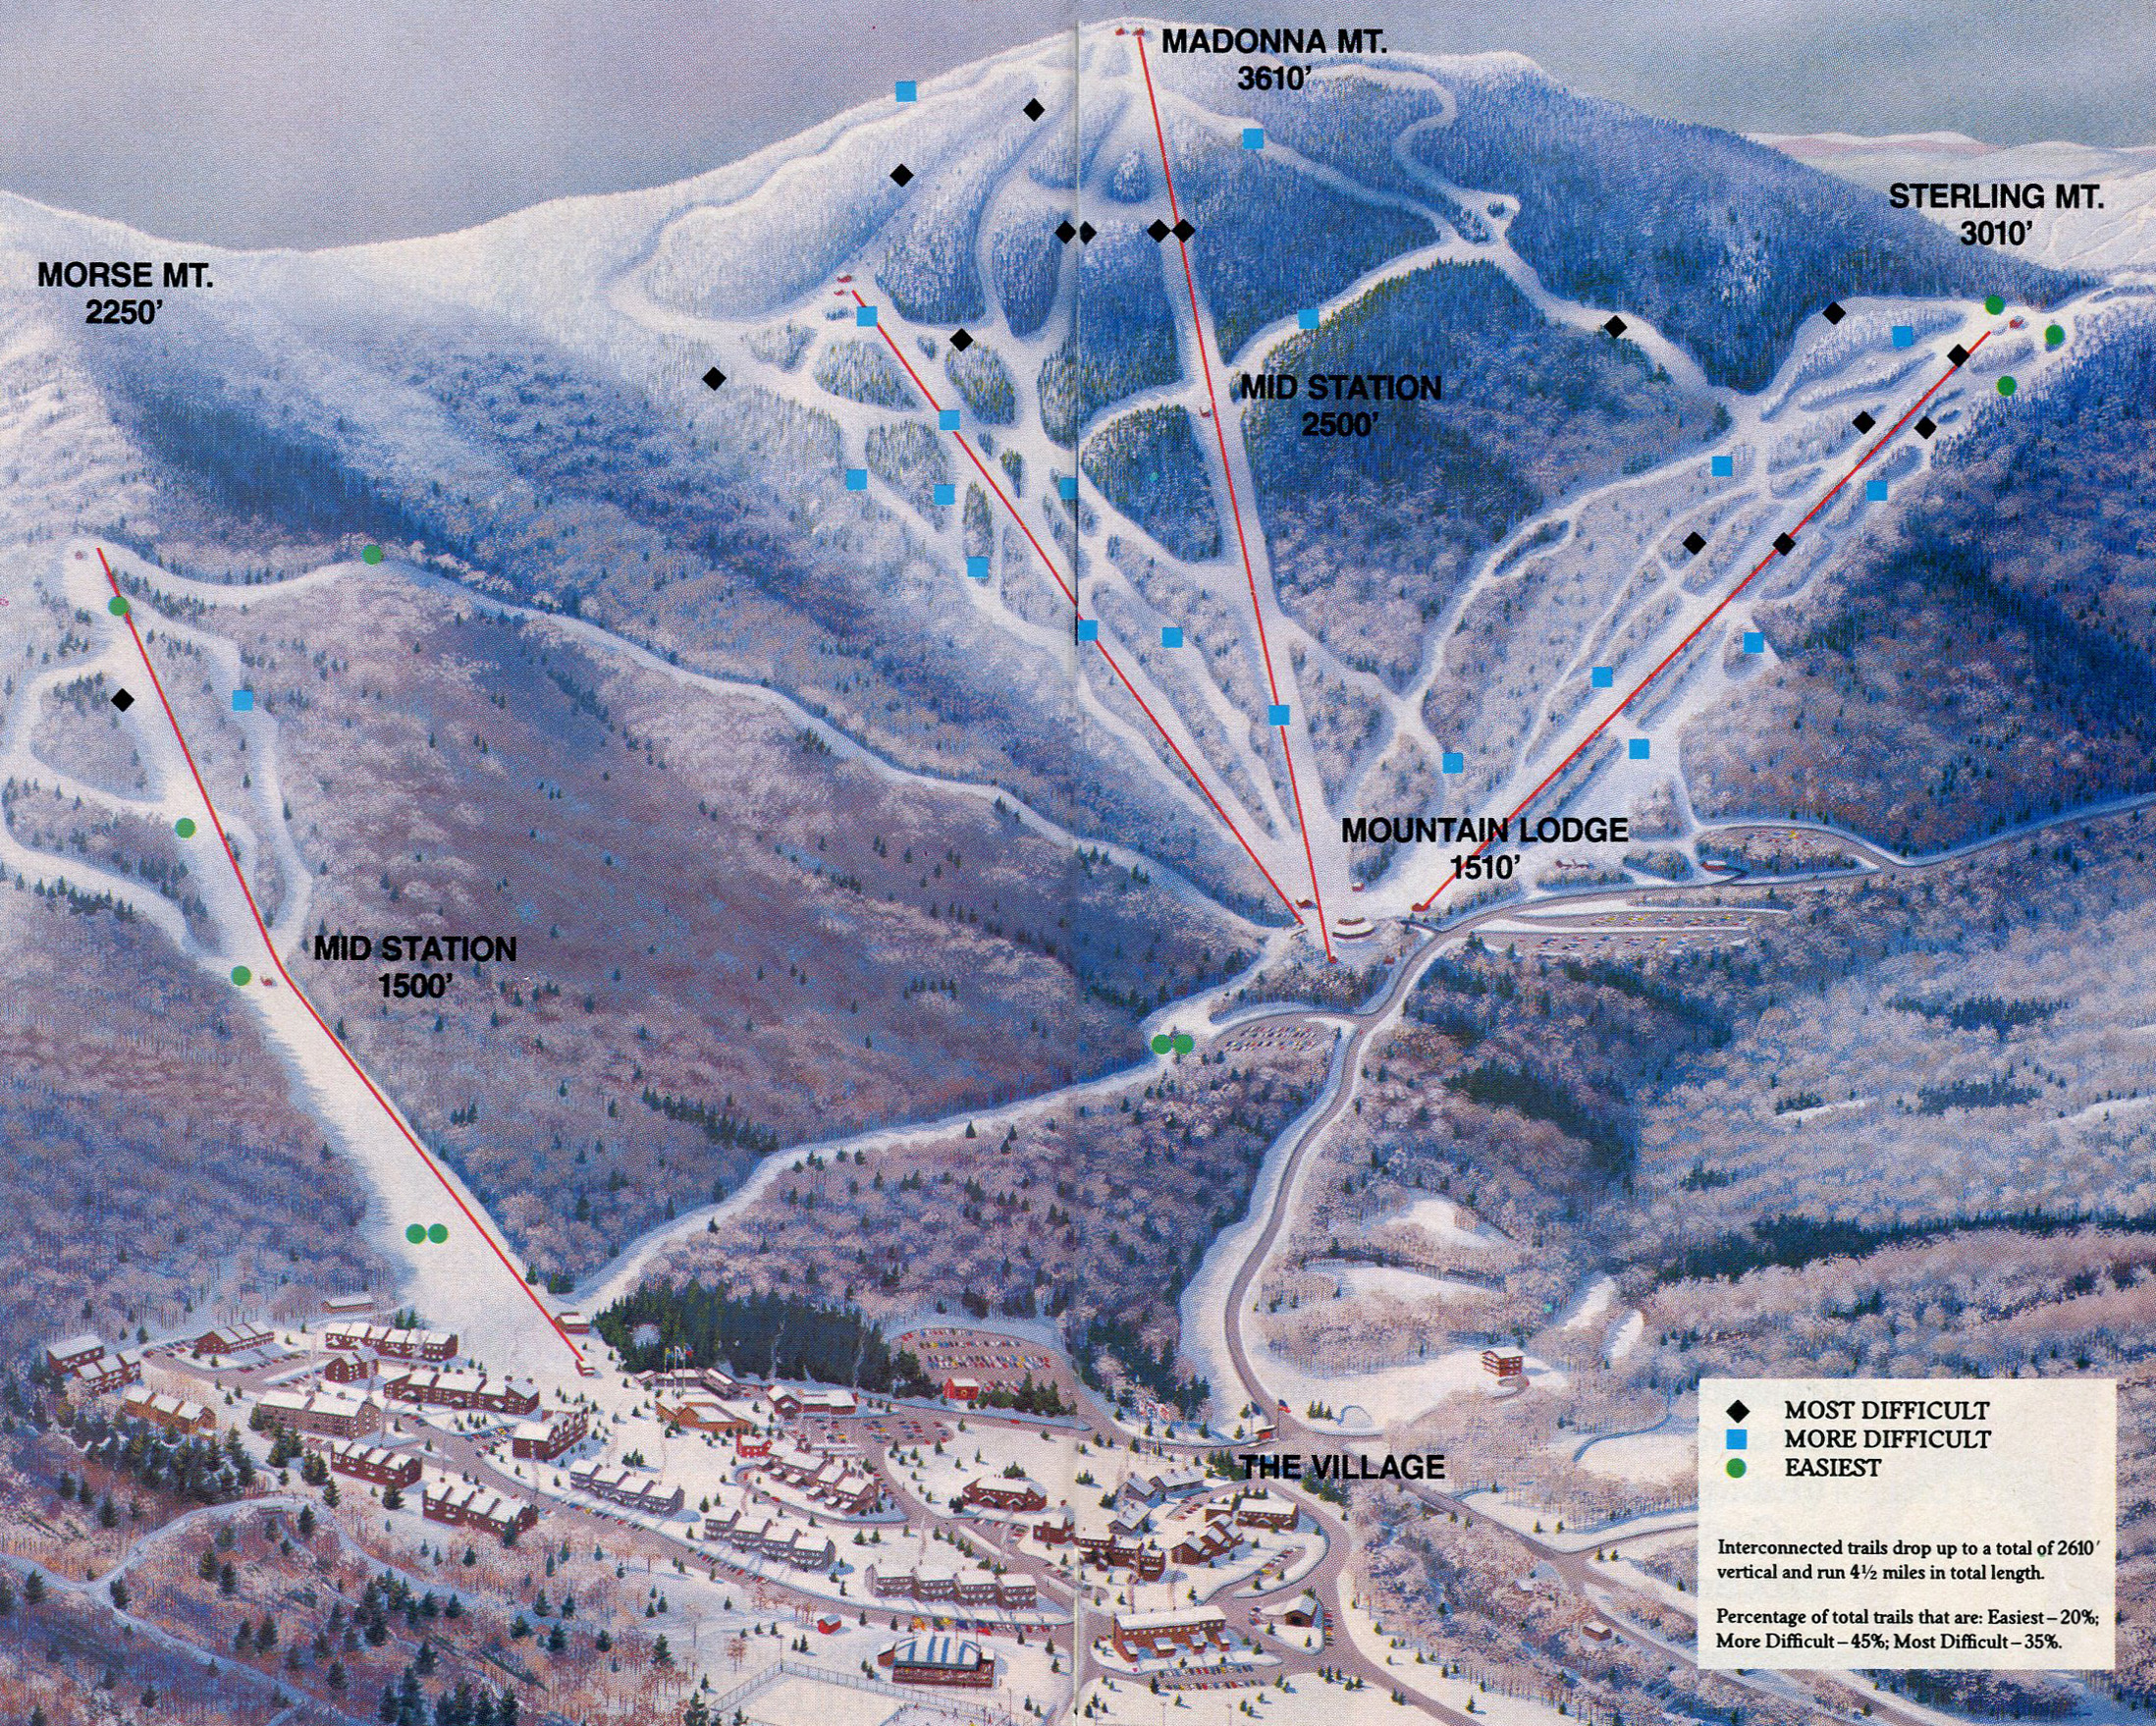 Smugglers' Notch Resort - SkiMap.org on mad river glen resort map, okemo resort map, smuggler s notch vermont on map, boyne mountain resort map, jay peak resort map, smuggler s notch road map, smugglers notch resort house layout, smugglers resort ski in out, sugarbush resort map, mount snow map, stratton mountain map, winter park resort map, vt snowfall map, smuggs road map,